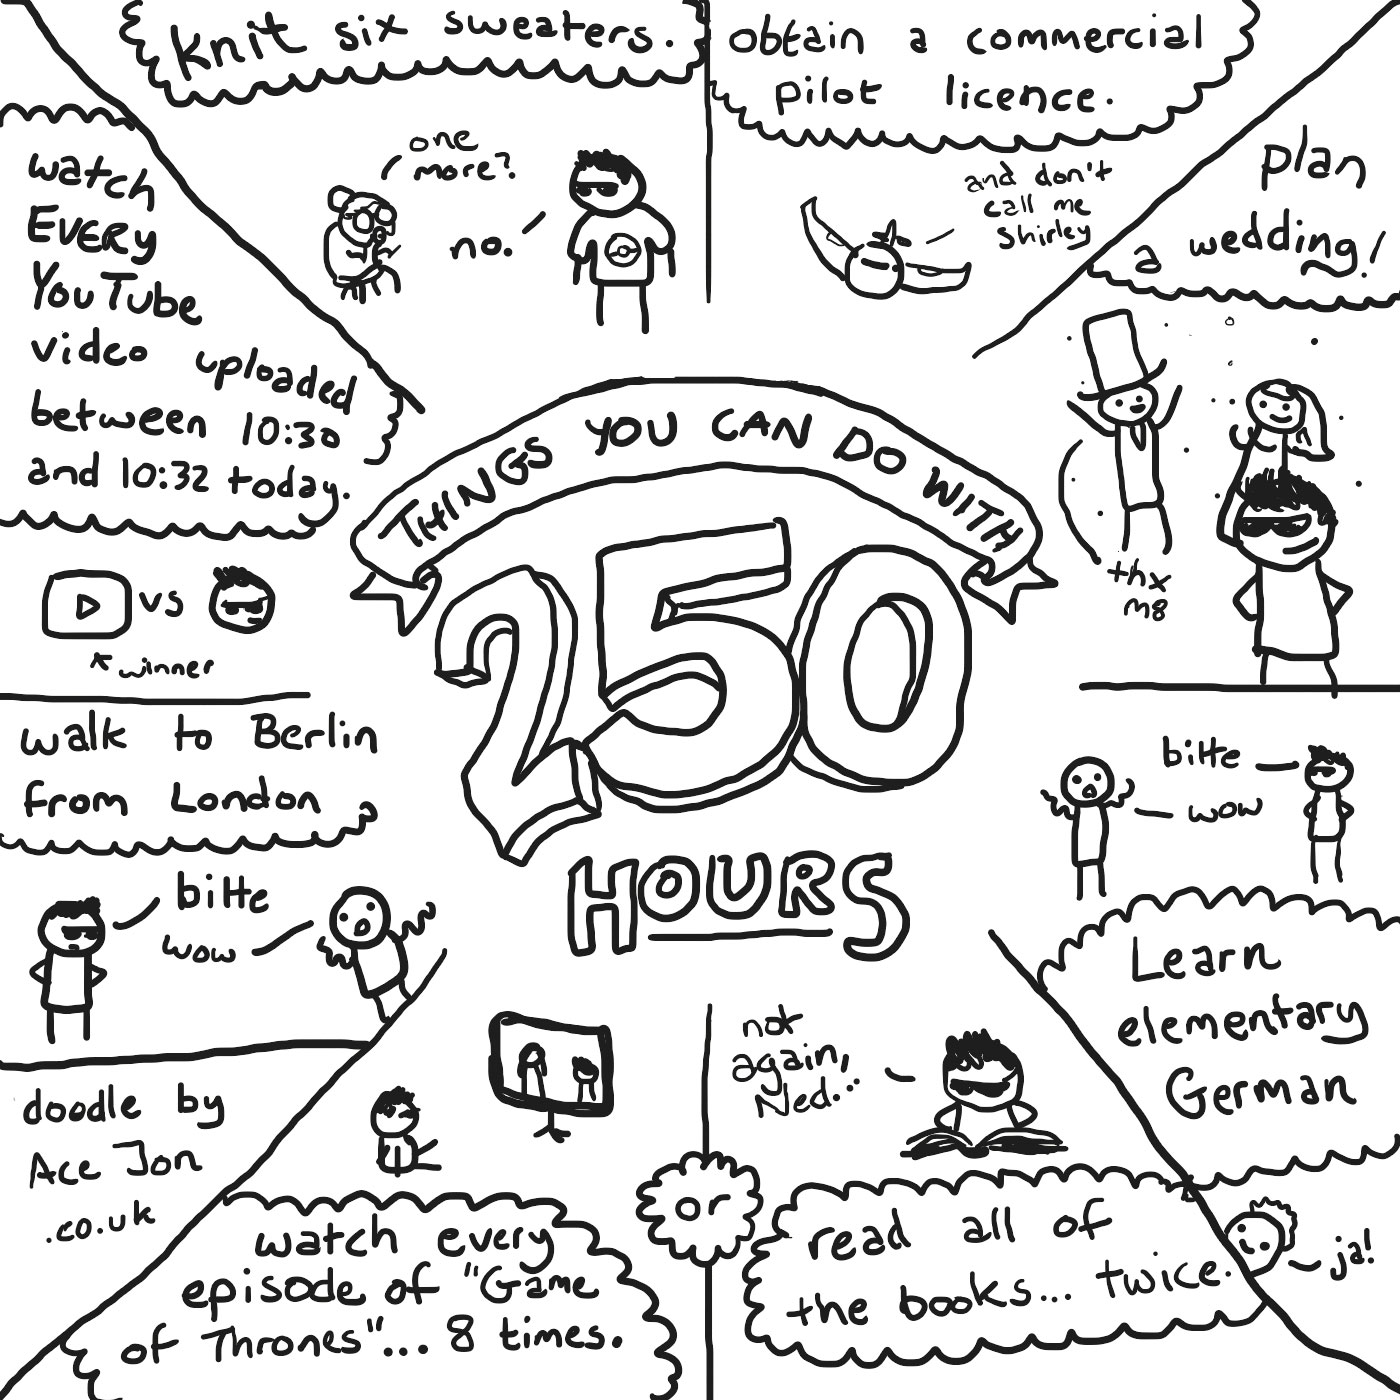 Things you can do with 250 hours